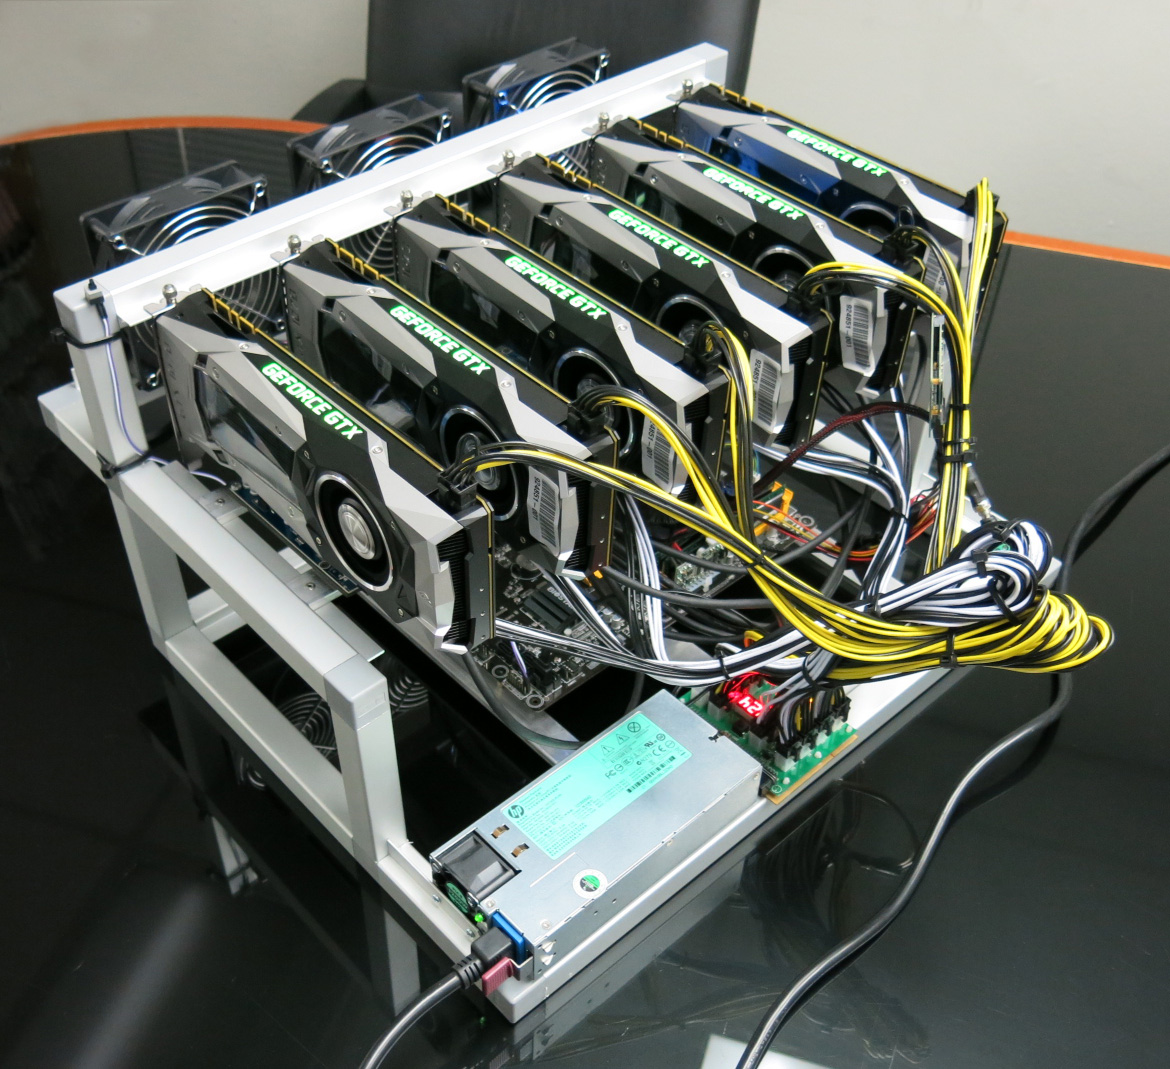 How To Maintain Mining Pool Run Rig 240v Outlet Wiring